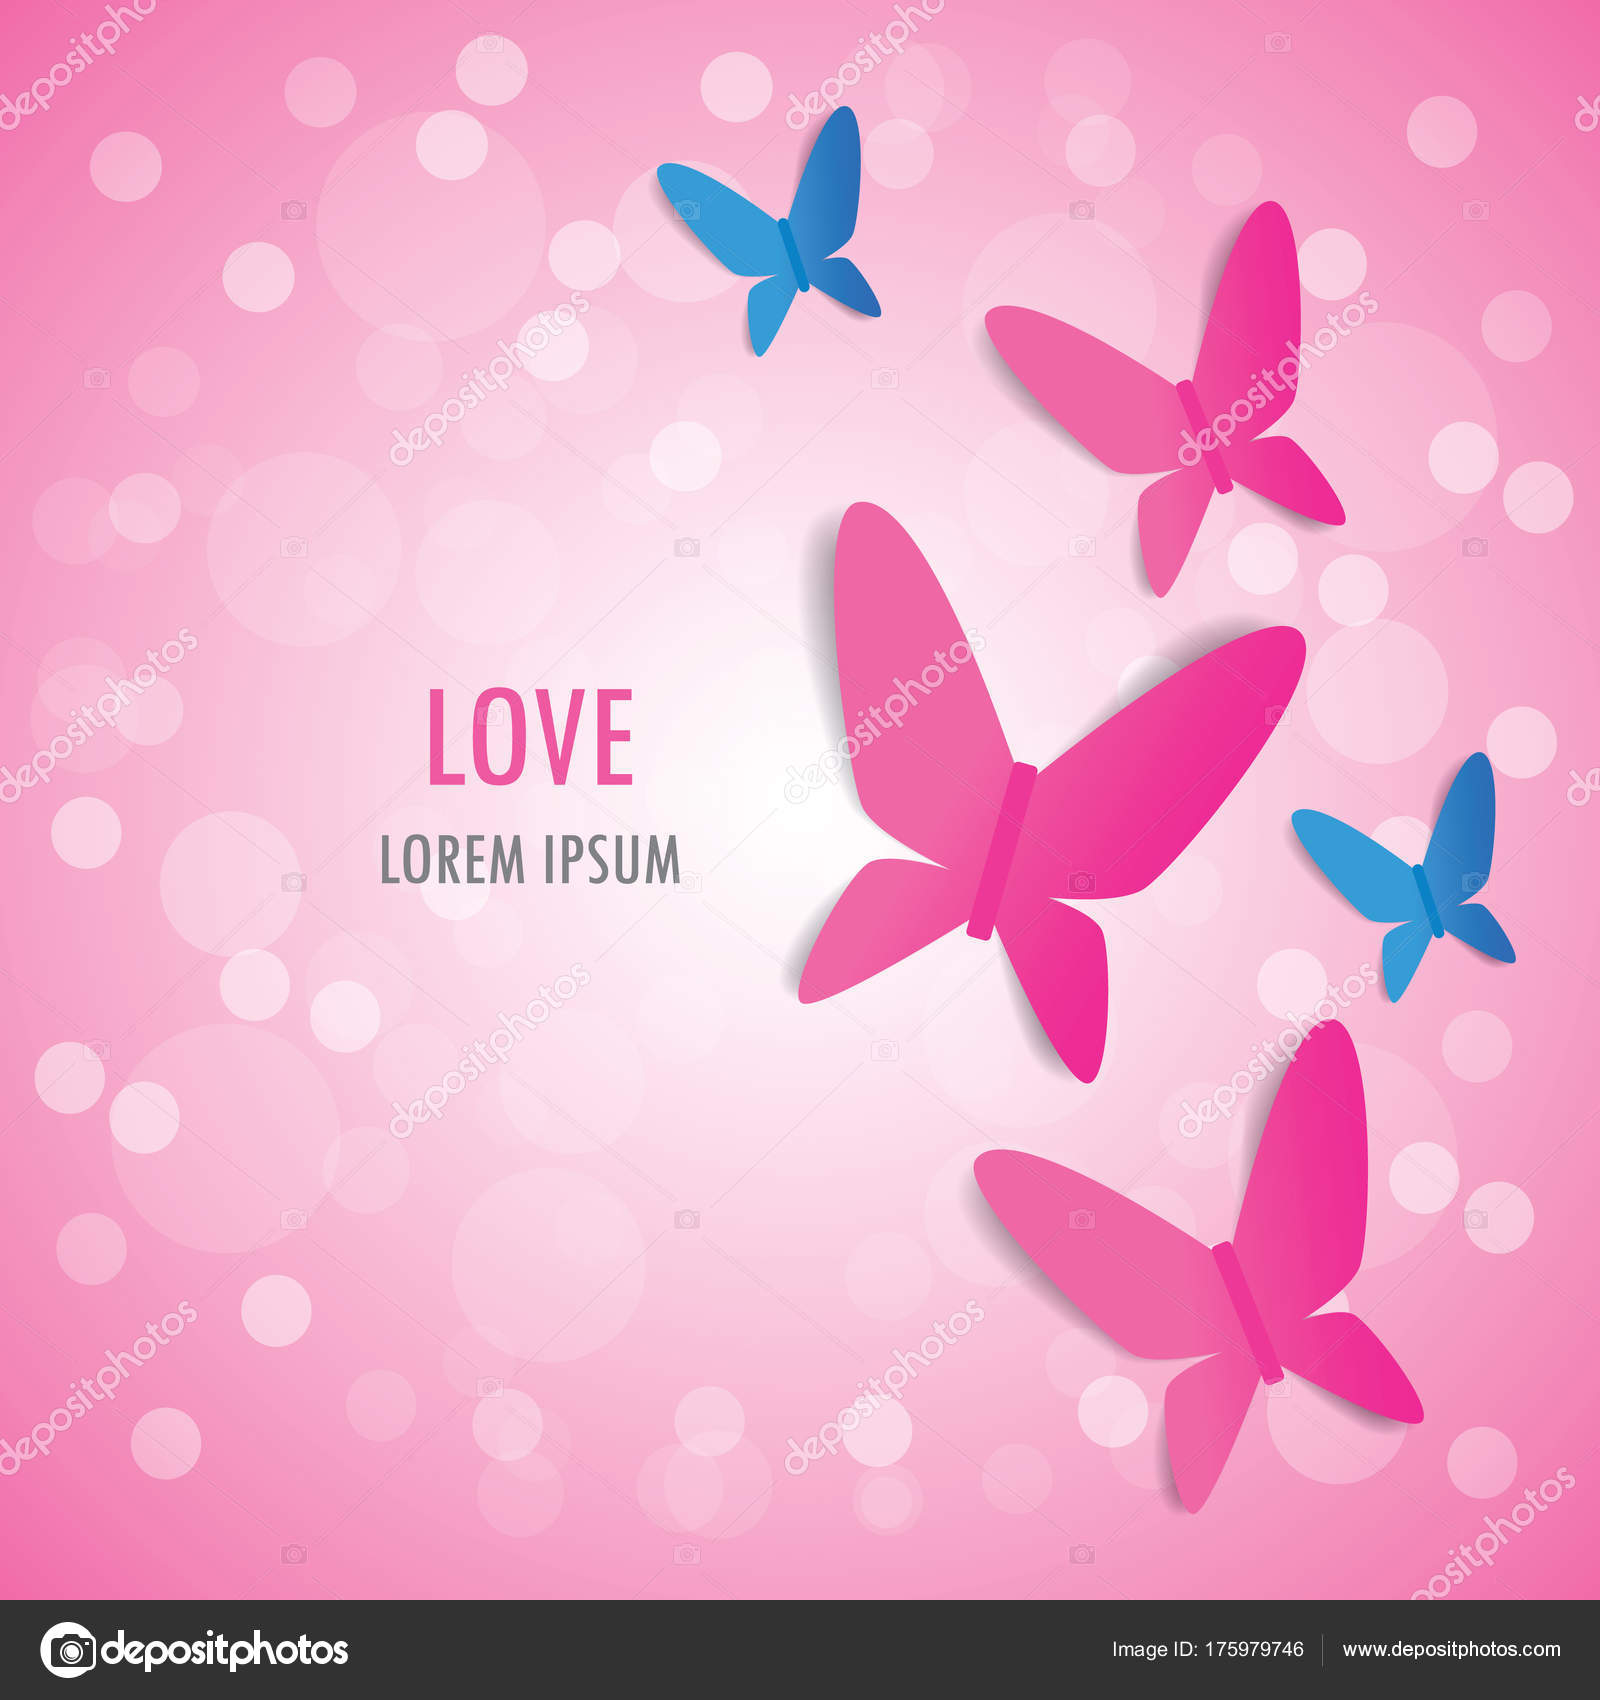 Love Valentine Day Greeting Card Background Pink Blue Butterfly Pink